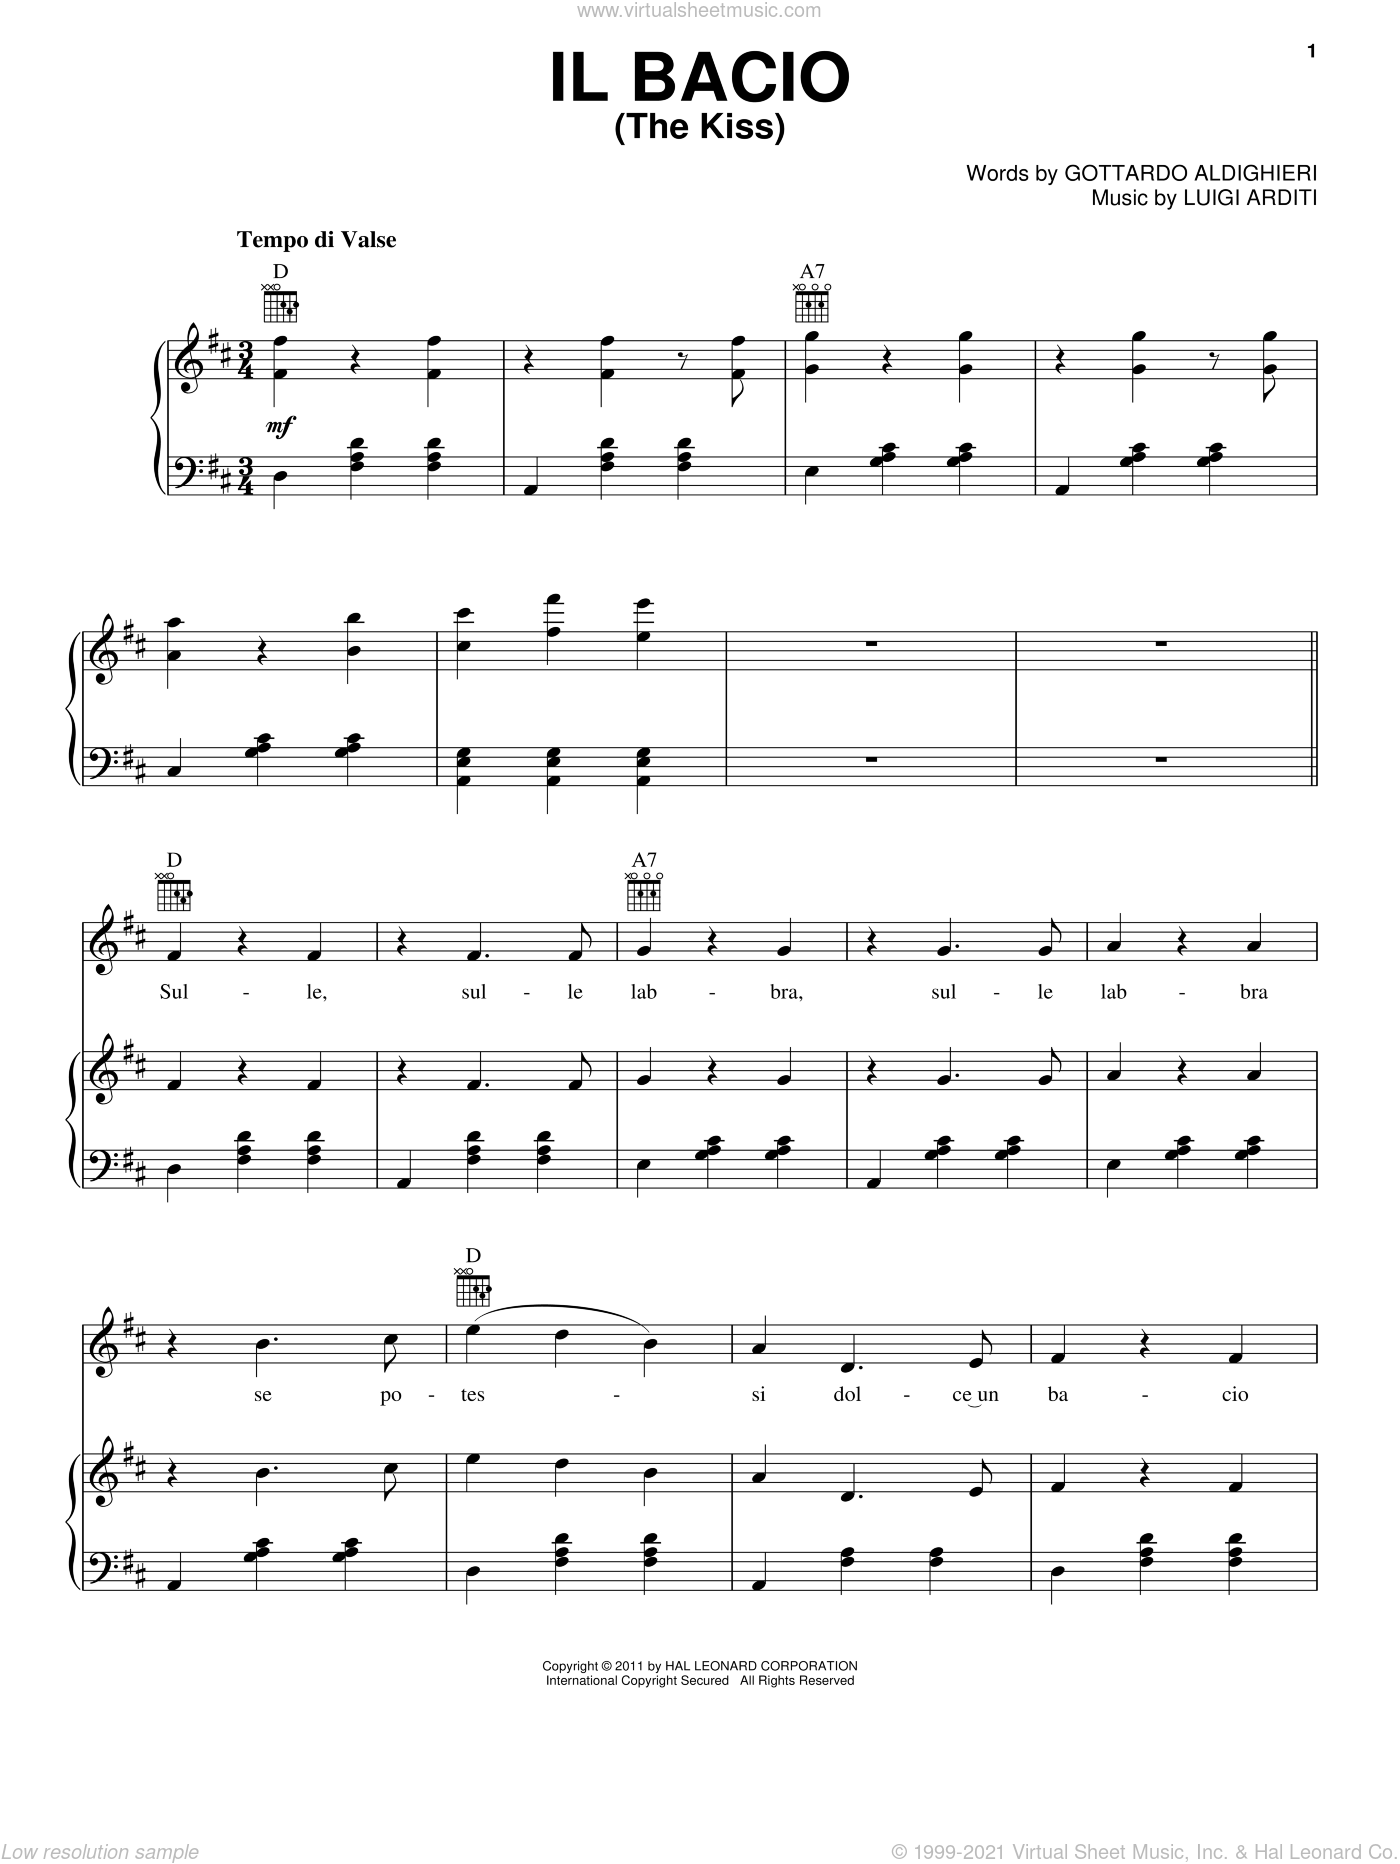 Il Bacio (The Kiss) sheet music for voice, piano or guitar by Luigi Arditi, classical score, intermediate skill level